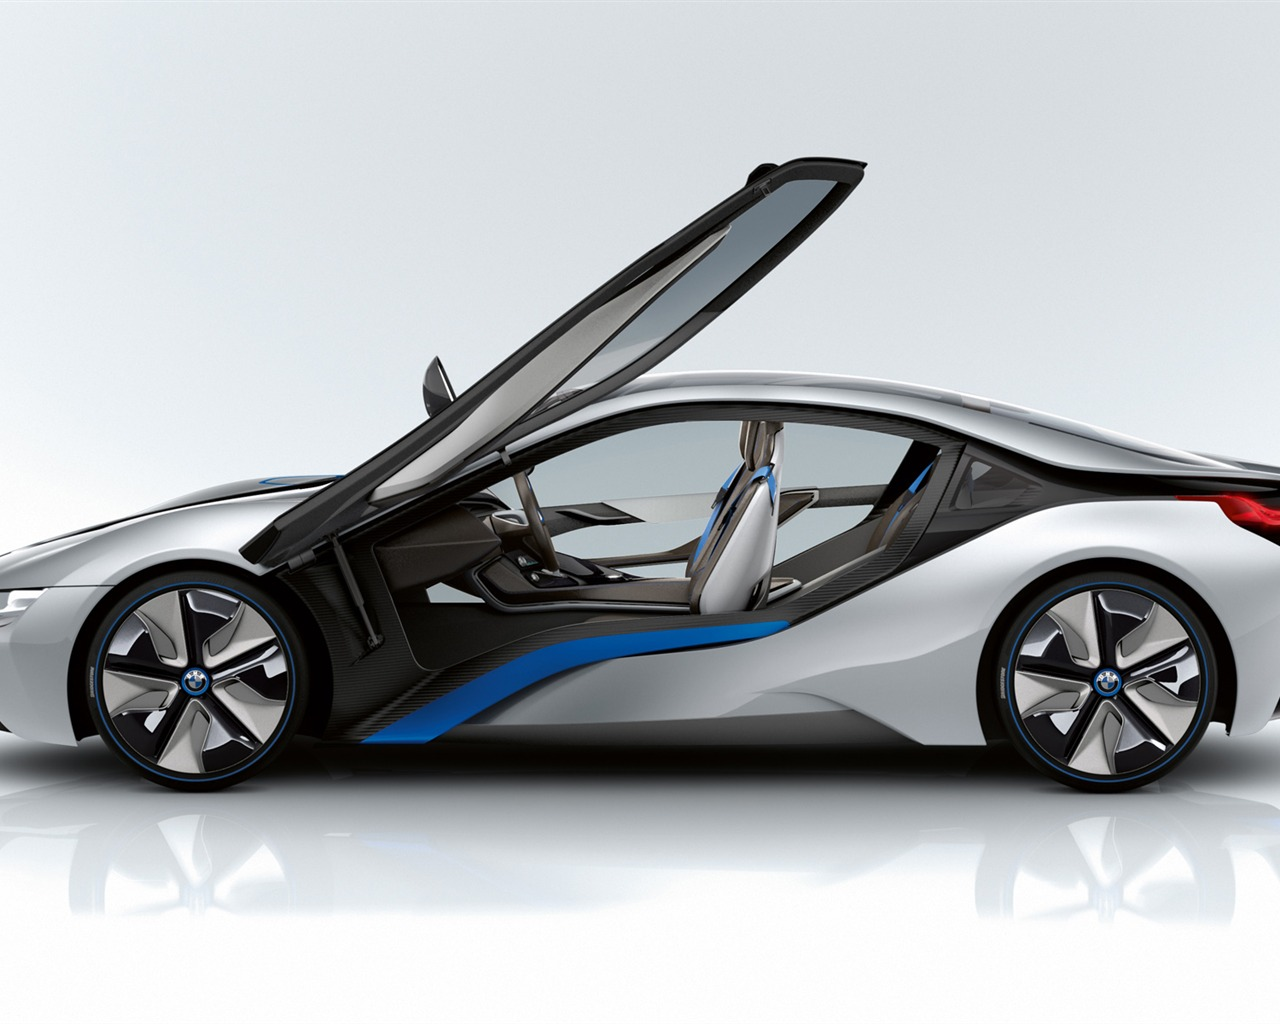 ... BMW i8 Concept - 2011 HD wallpapers - Auto Wallpapers - V3 Wallpaper